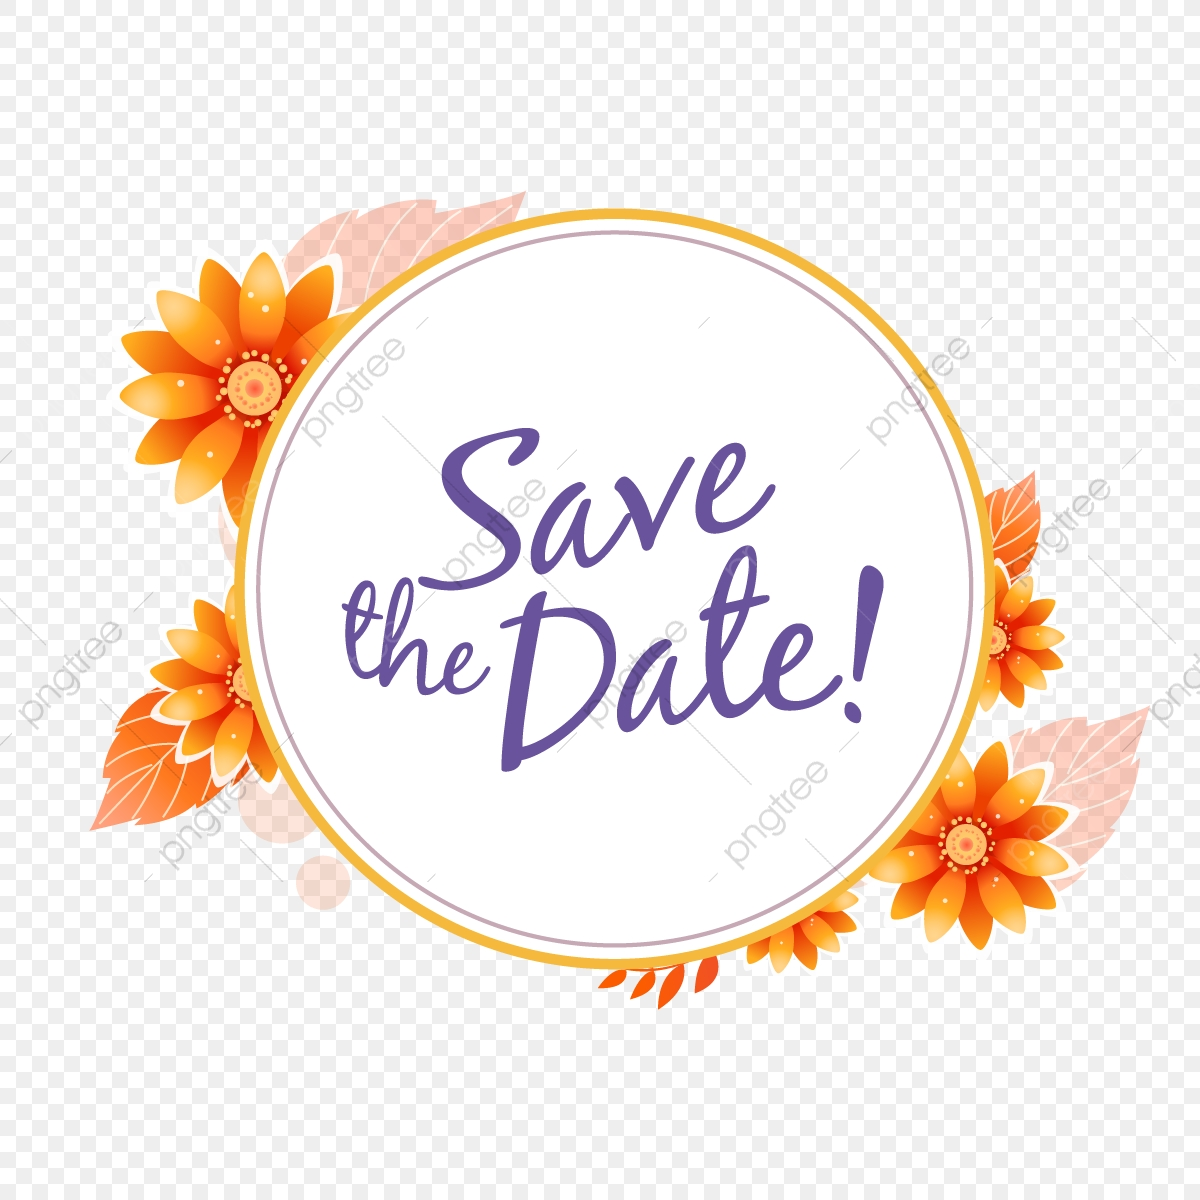 Save The Date Wedding Invitation Templates, Wedding.